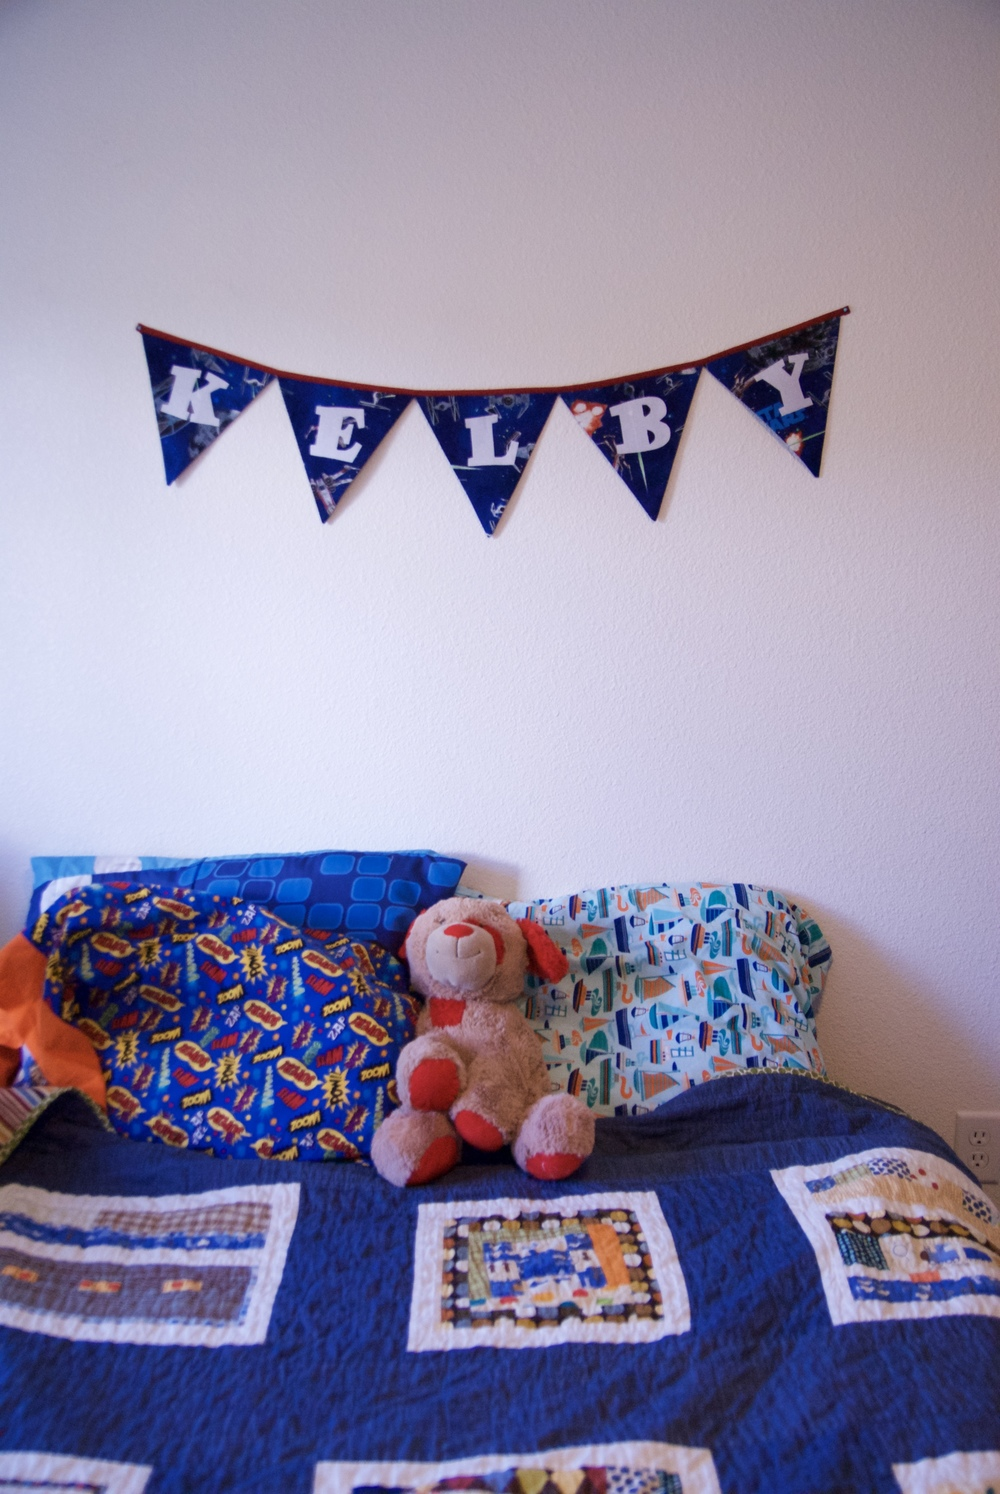 How to Make a Name Banner Bunting - Free Tutorial